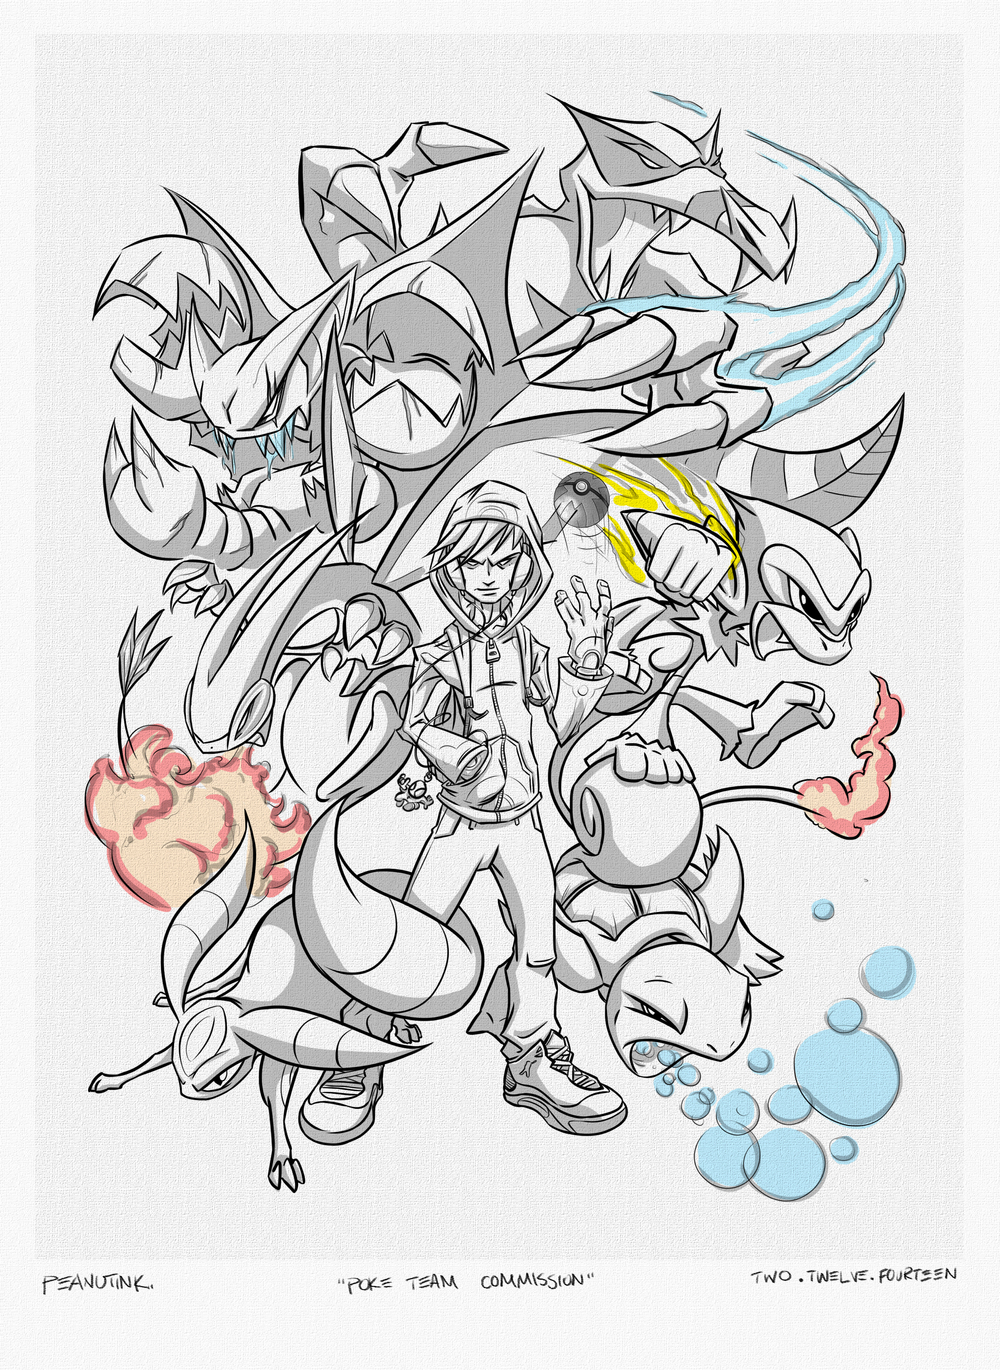 ...weekly ink # 6, pokemon team commission sketch...